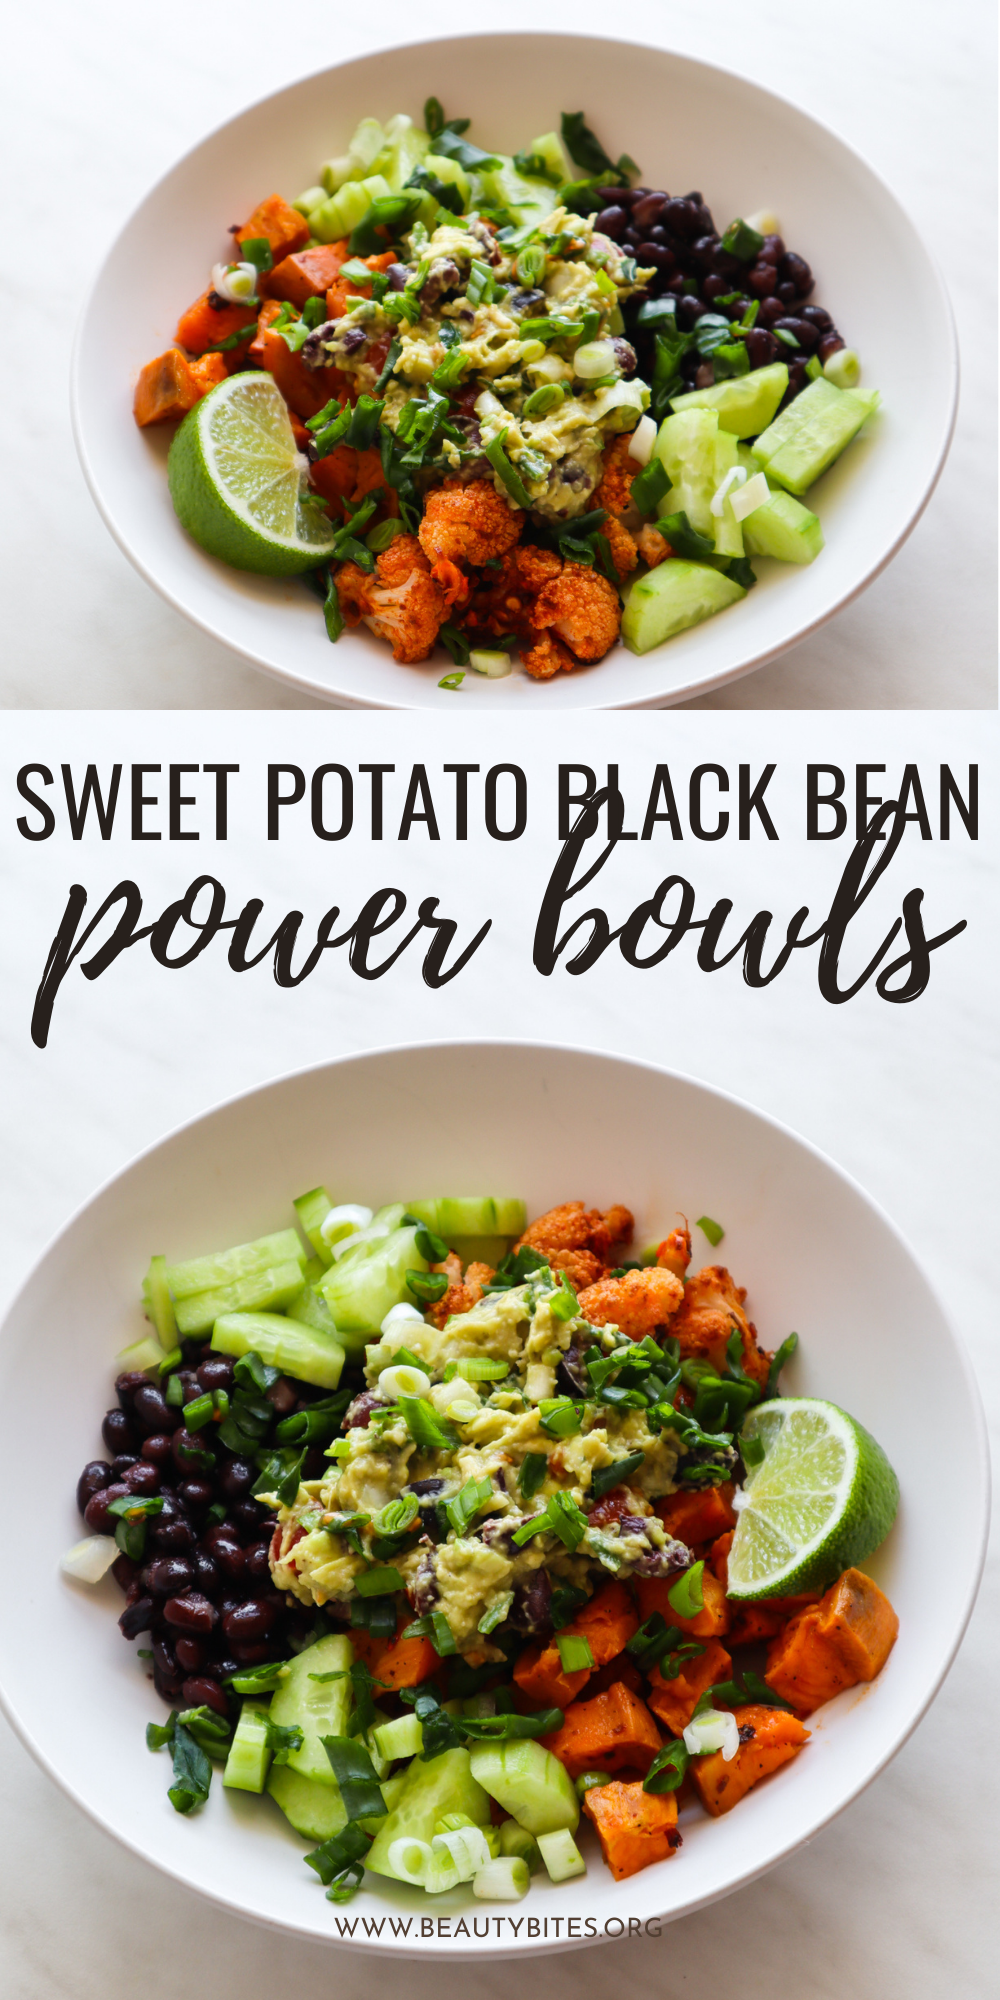 These sweet potato black bean power bowls are full of flavor and really easy to make. You'll love these healthy vegan power bowls as a healthy gluten free vegan dinner idea or lunch recipe!